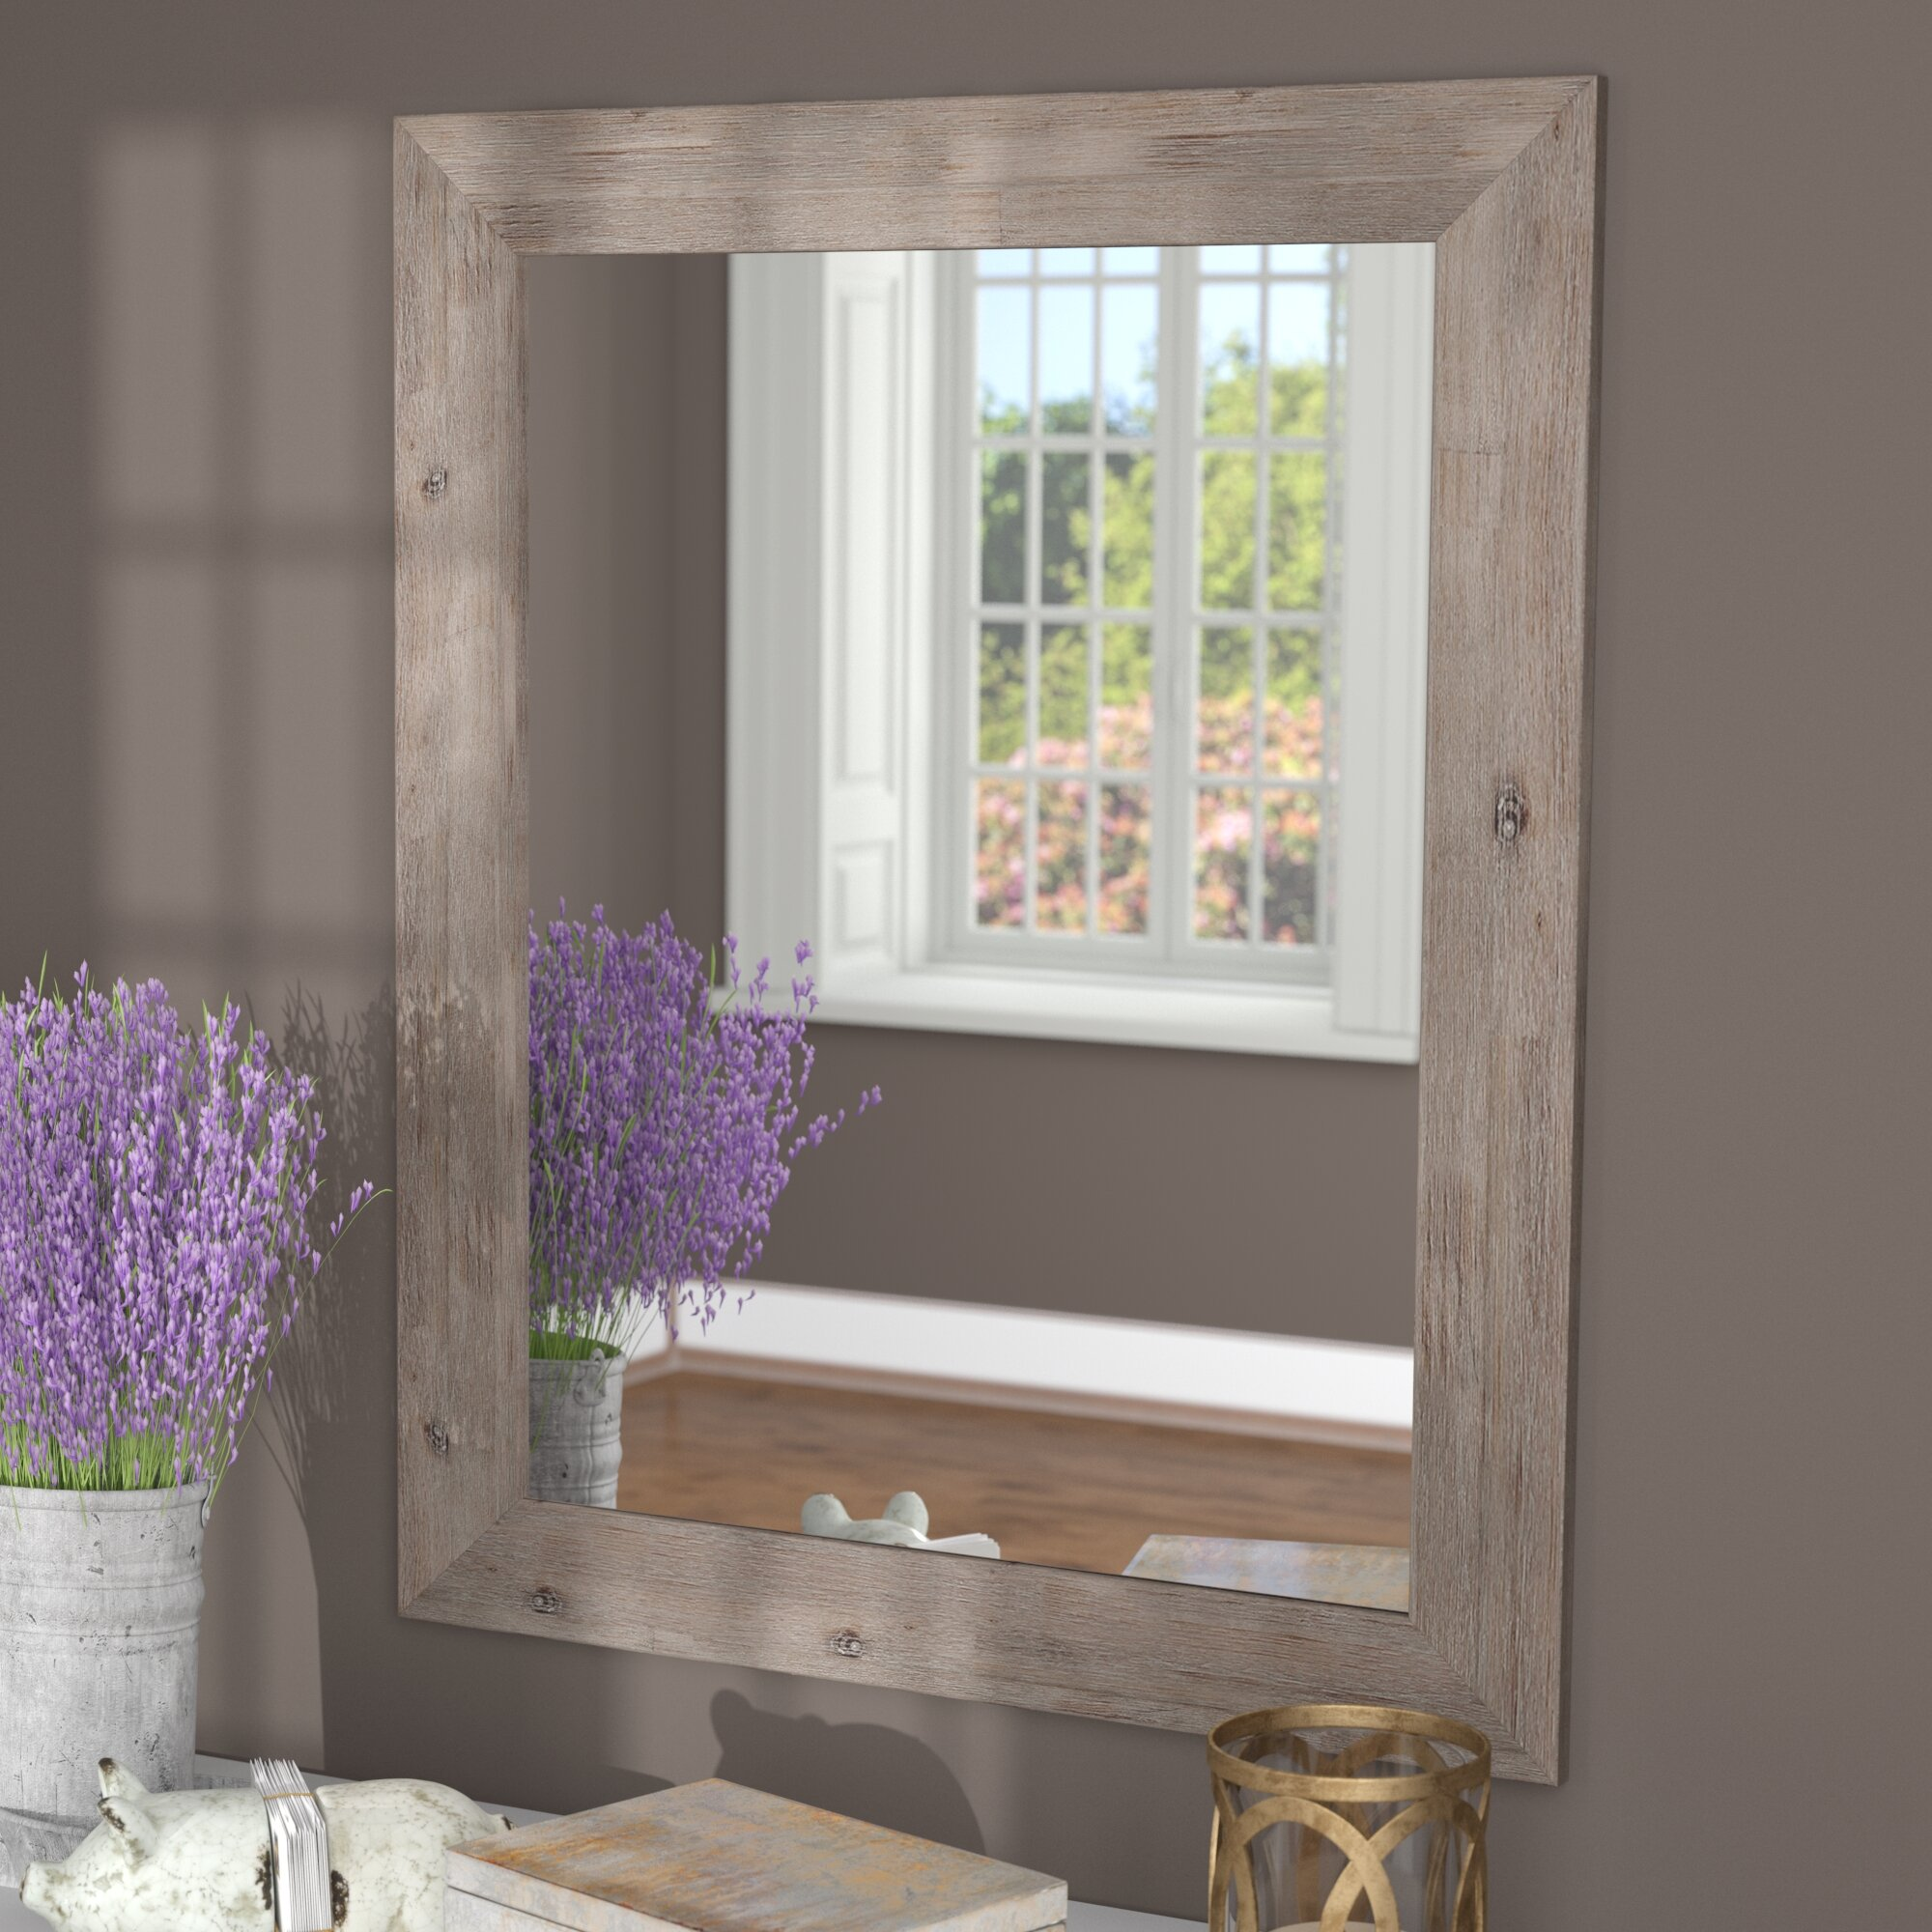 Union Rustic Glynis Rustic Wild West Barnwood Wall Mirror & Reviews on